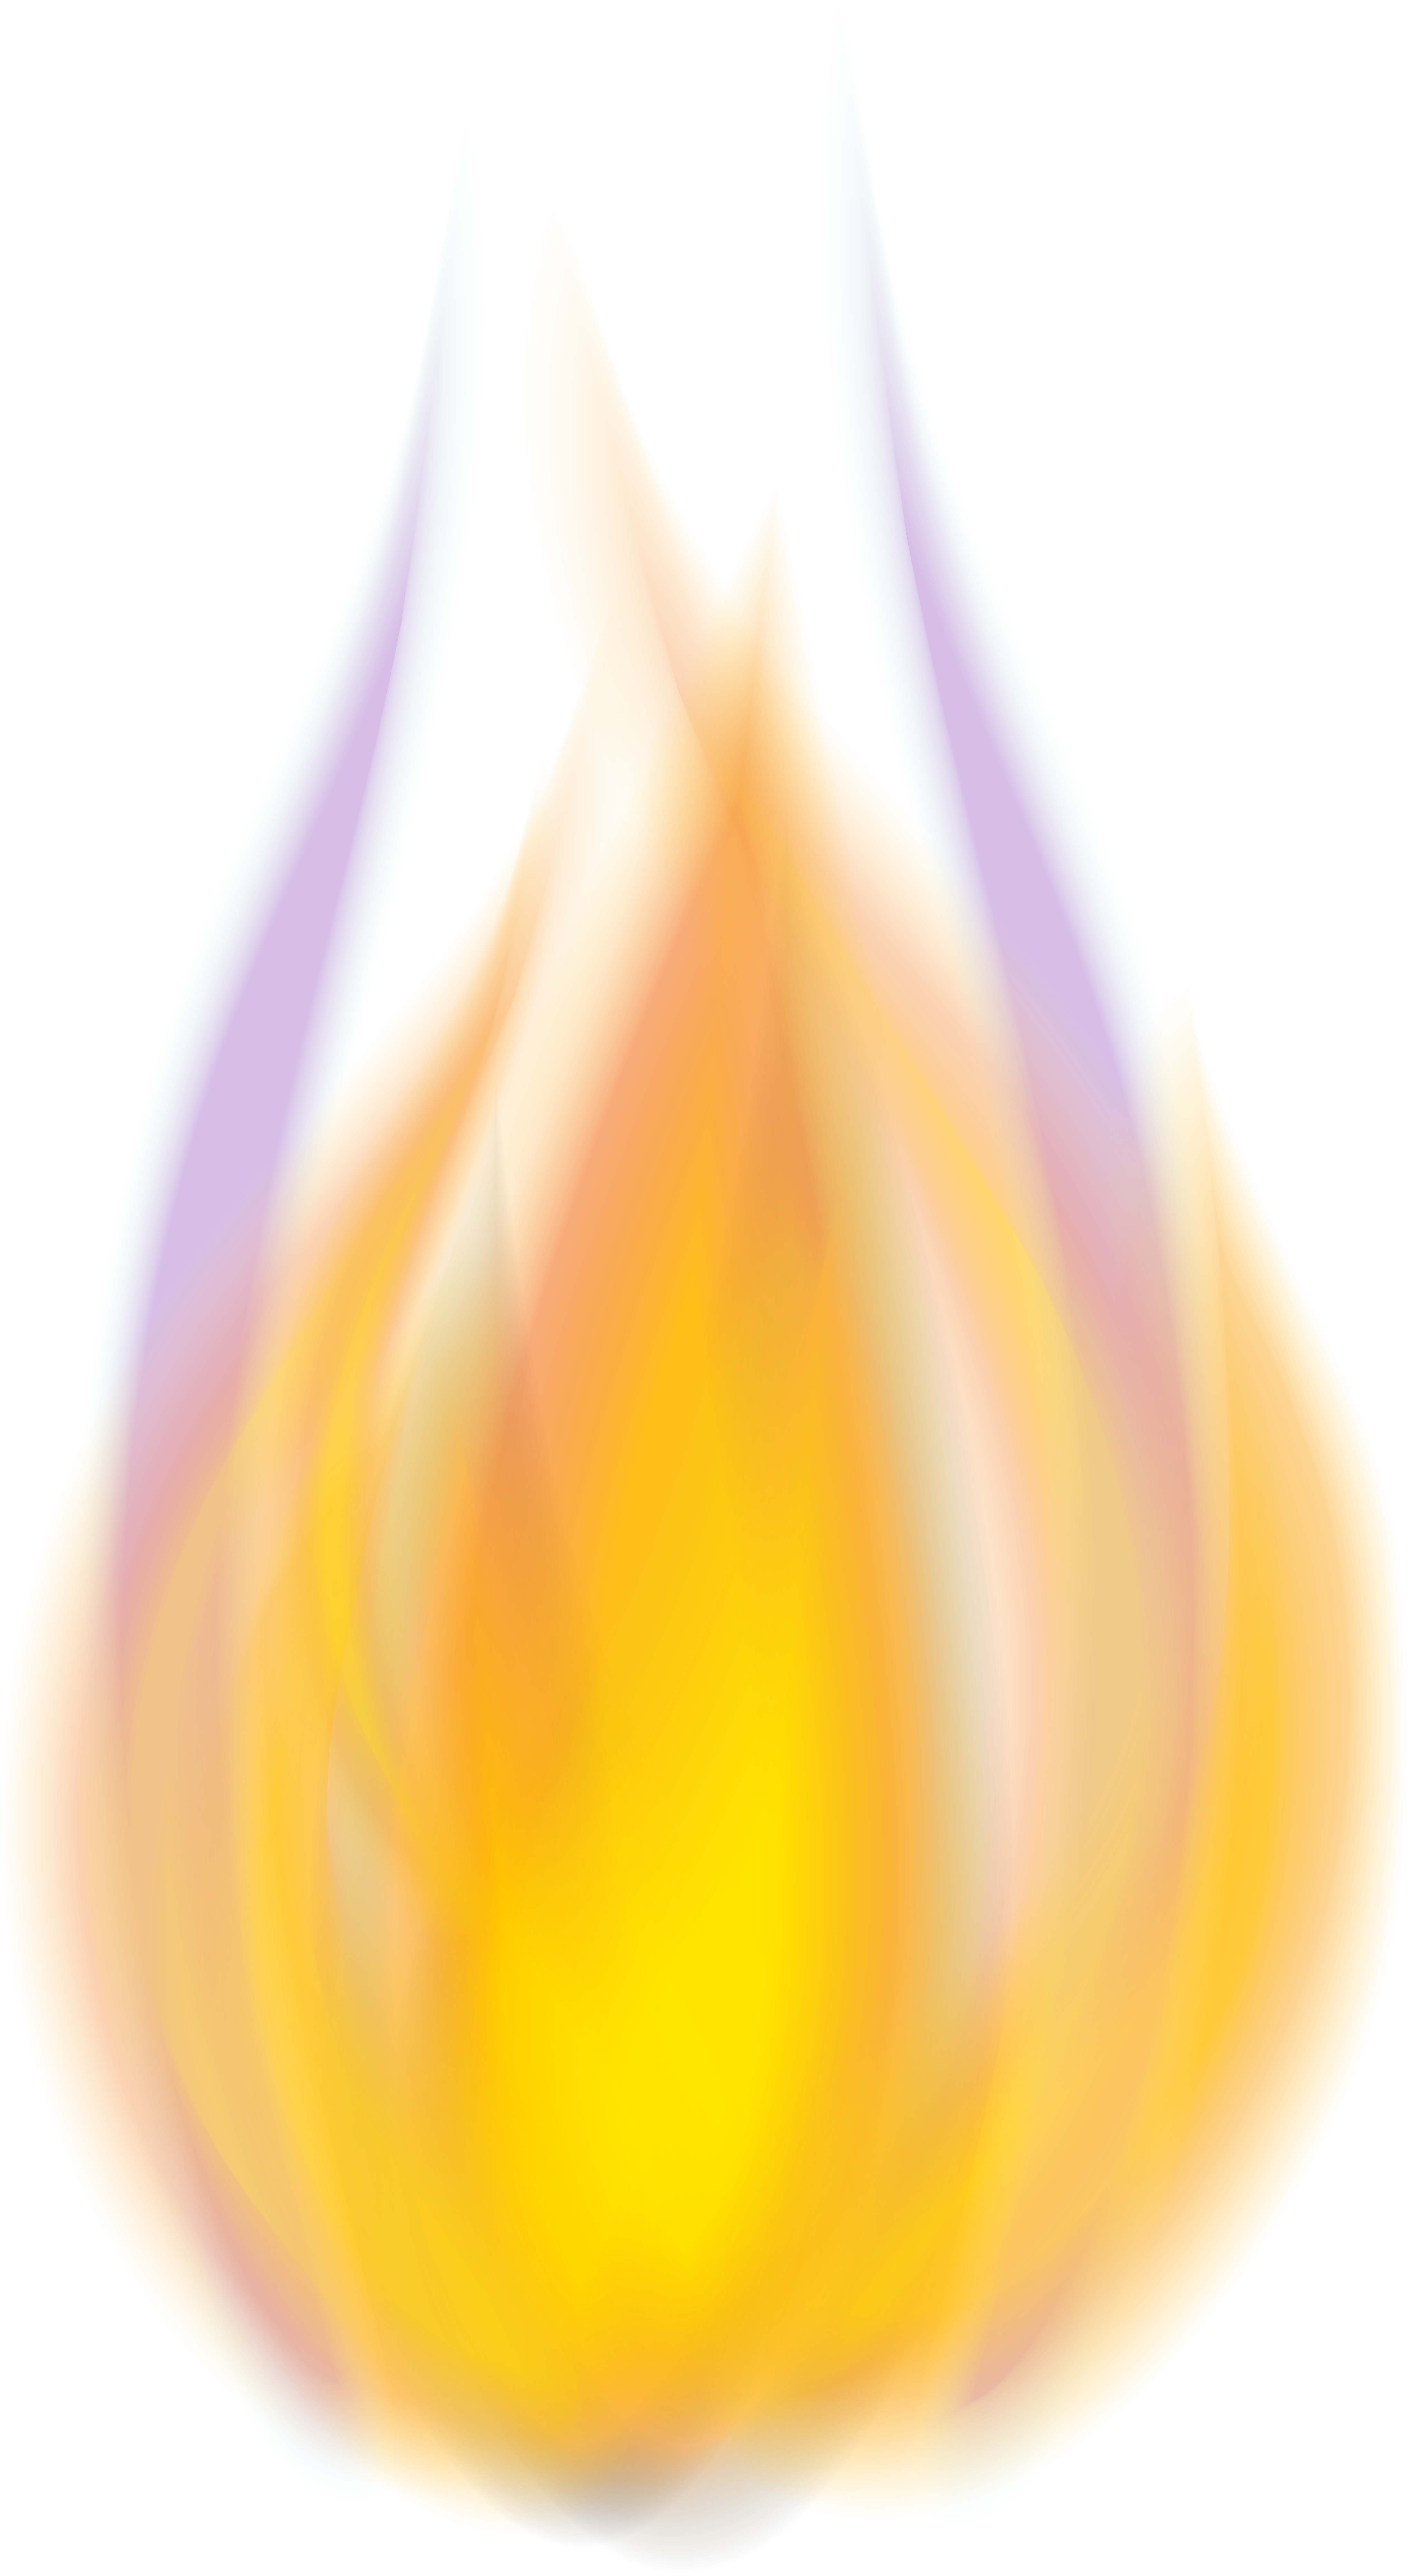 Flames clipart gold. Flame png clip art